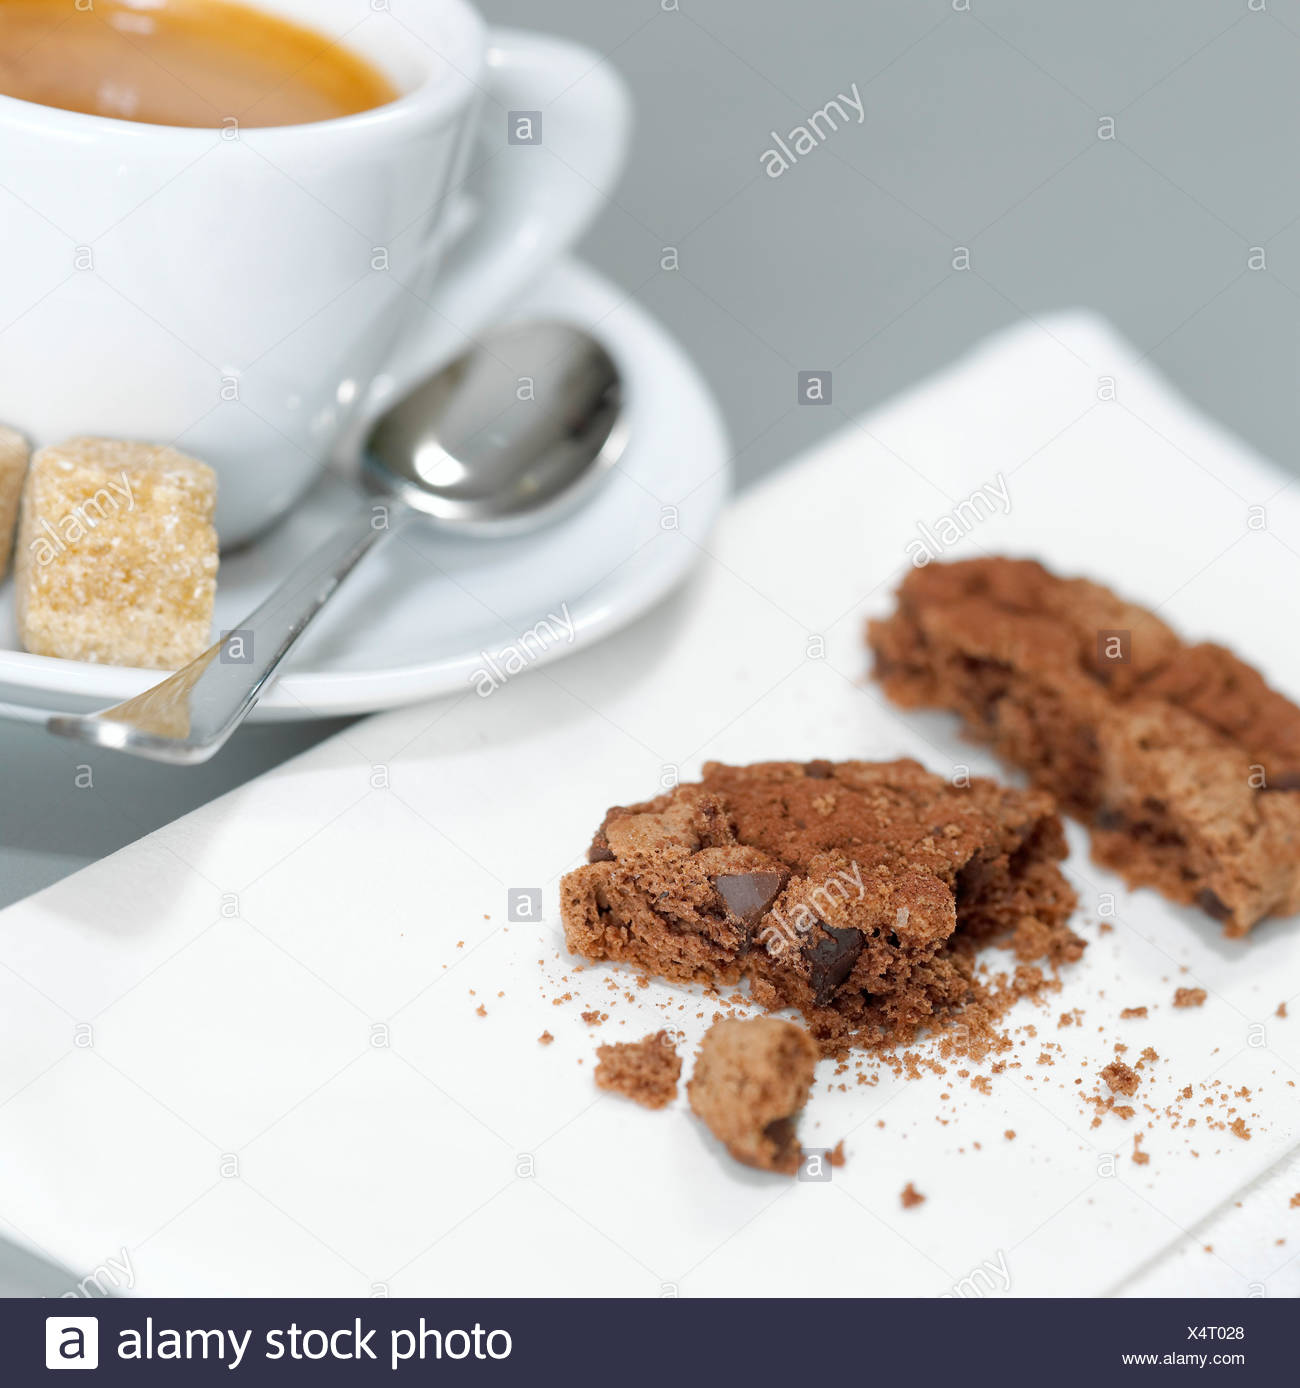 A cup of Espresso and chocolate cookies, detail - Stock Image